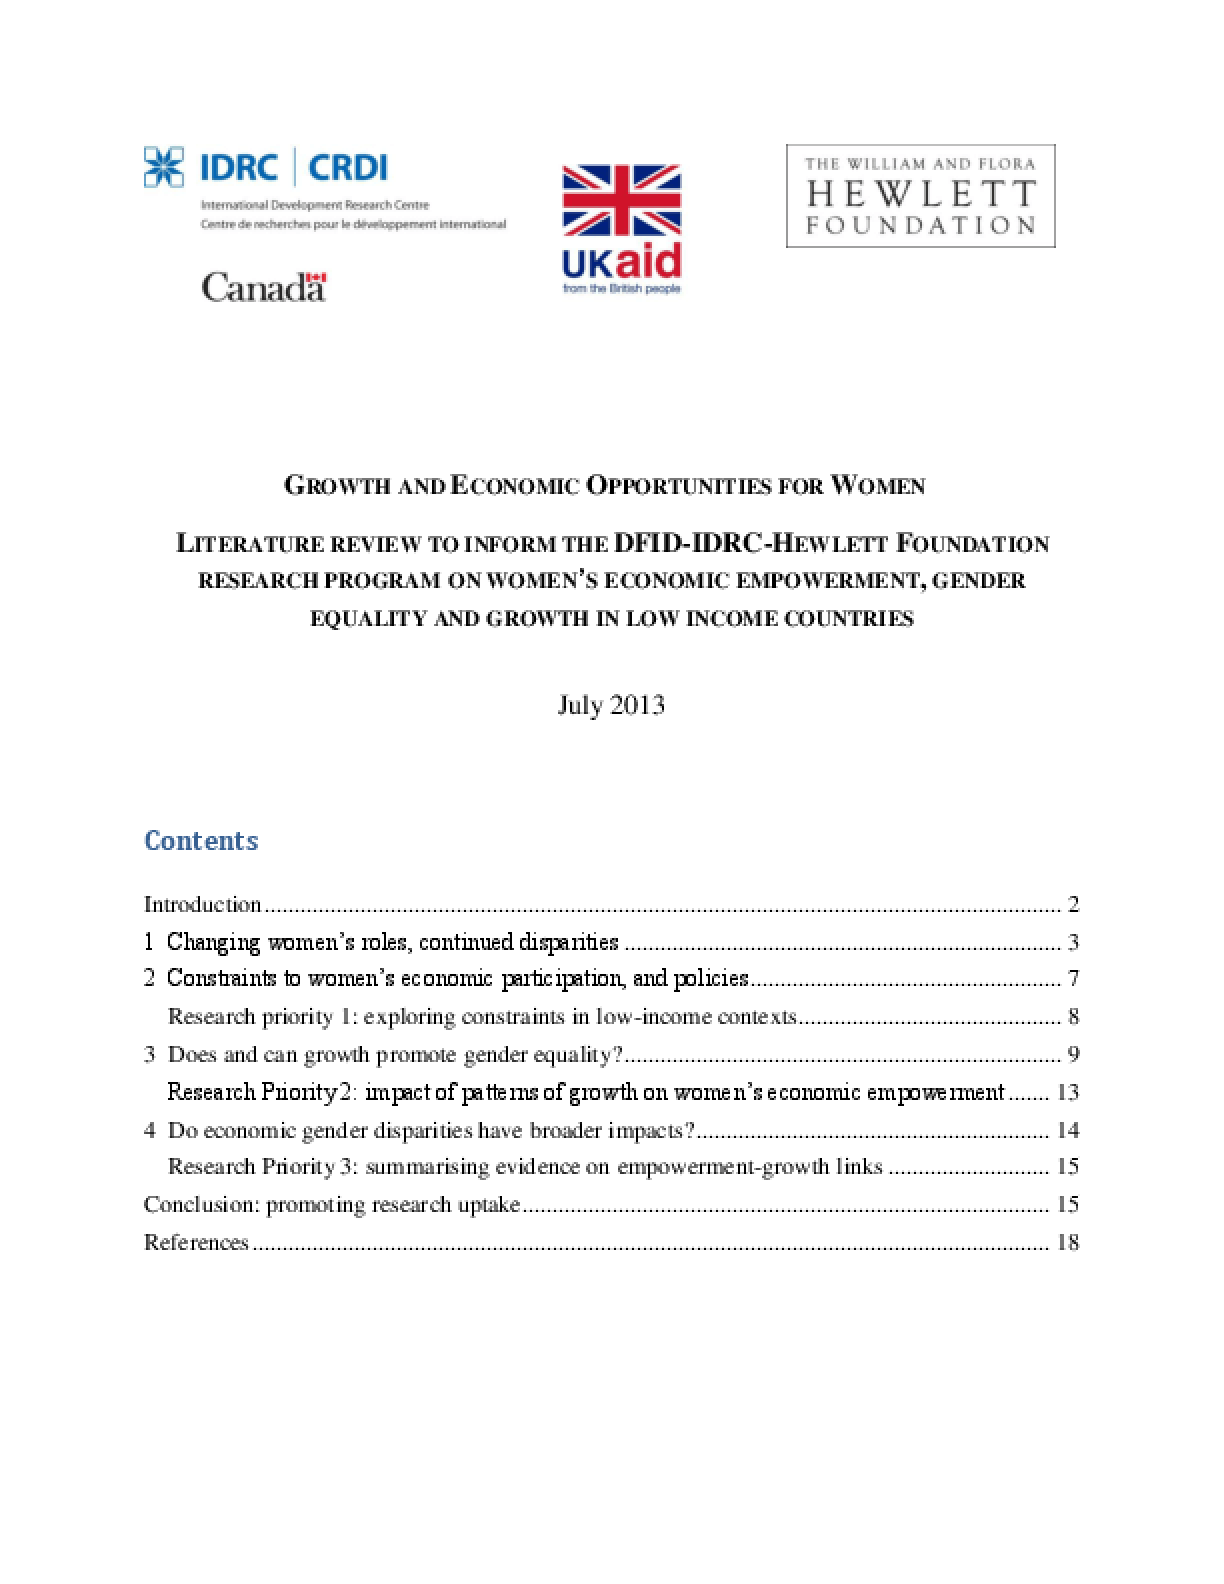 Growth and economic opportunities for women: literature review to inform the DFID-IDRC-Hewlett Foundation research program on women's economic empowerment, gender equality and growth in low income countries